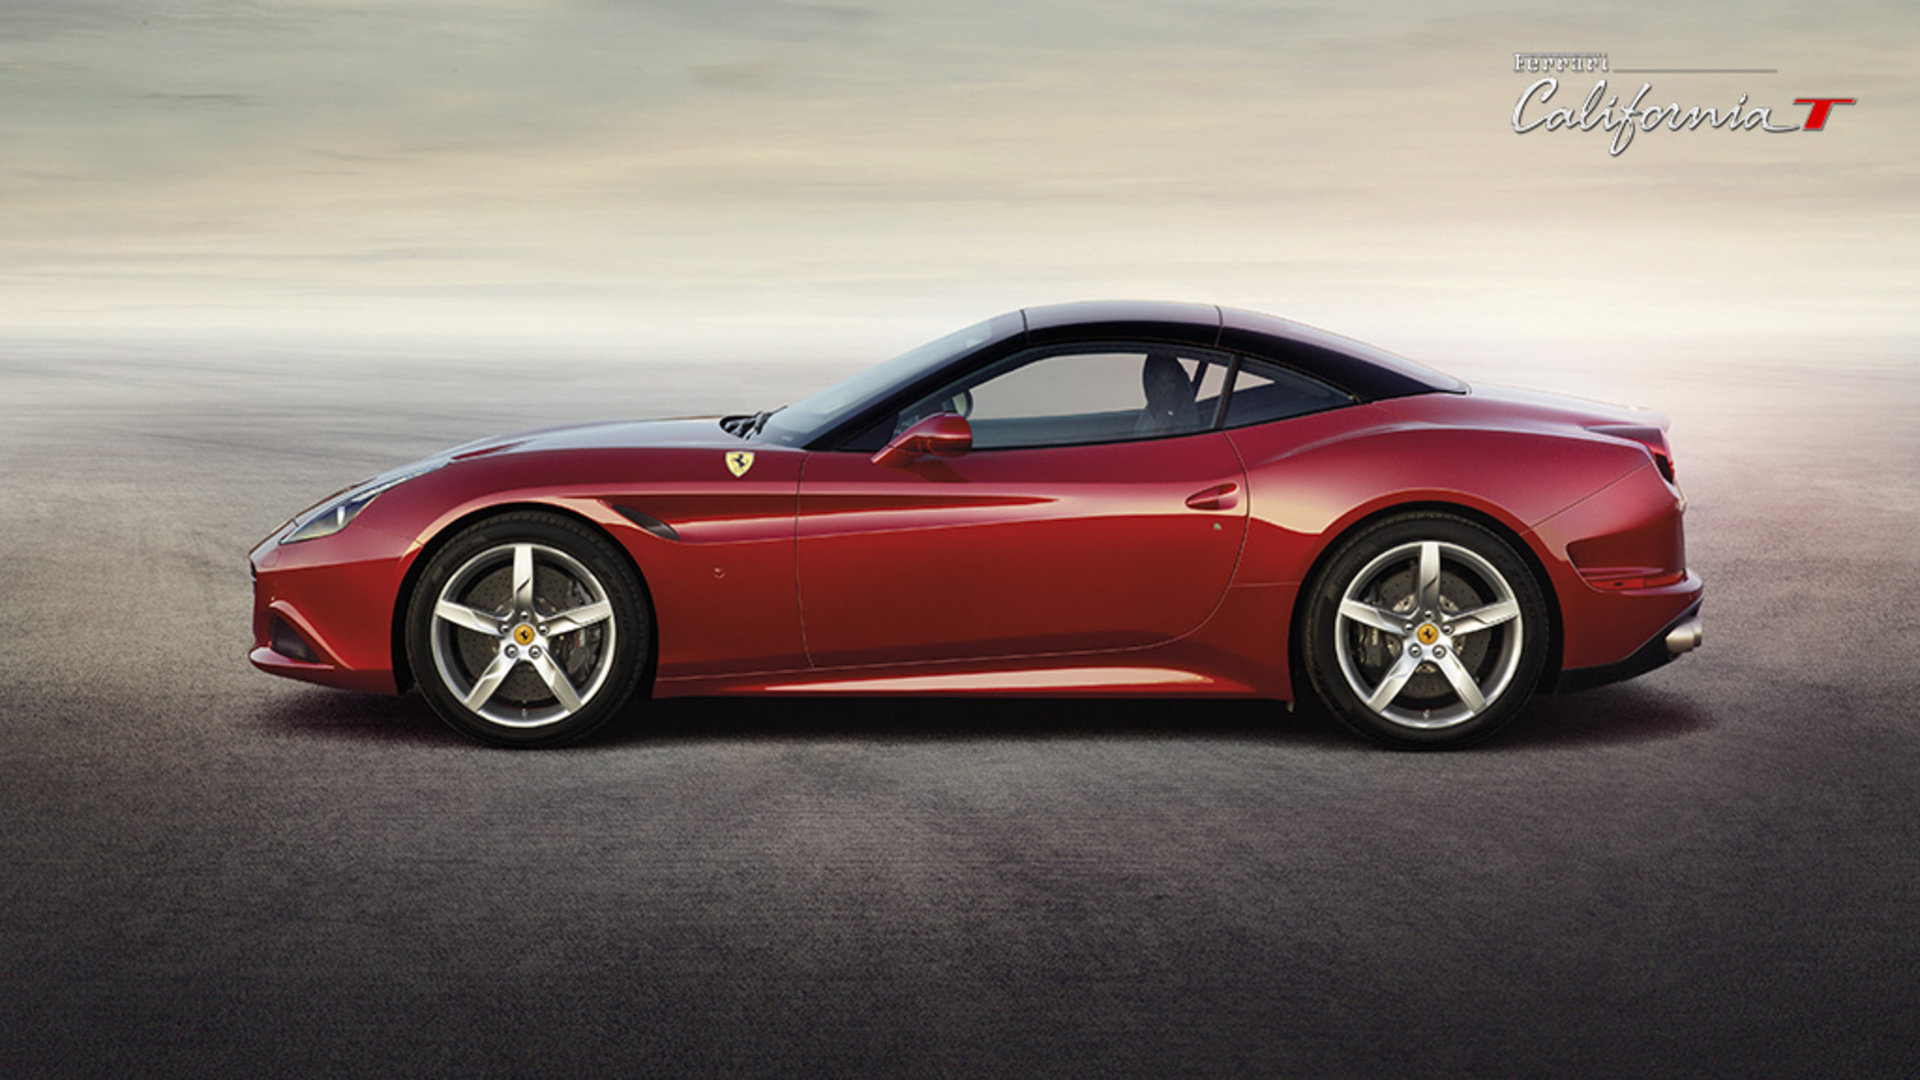 2015 Ferrari California T Tech Explained - autoevolution